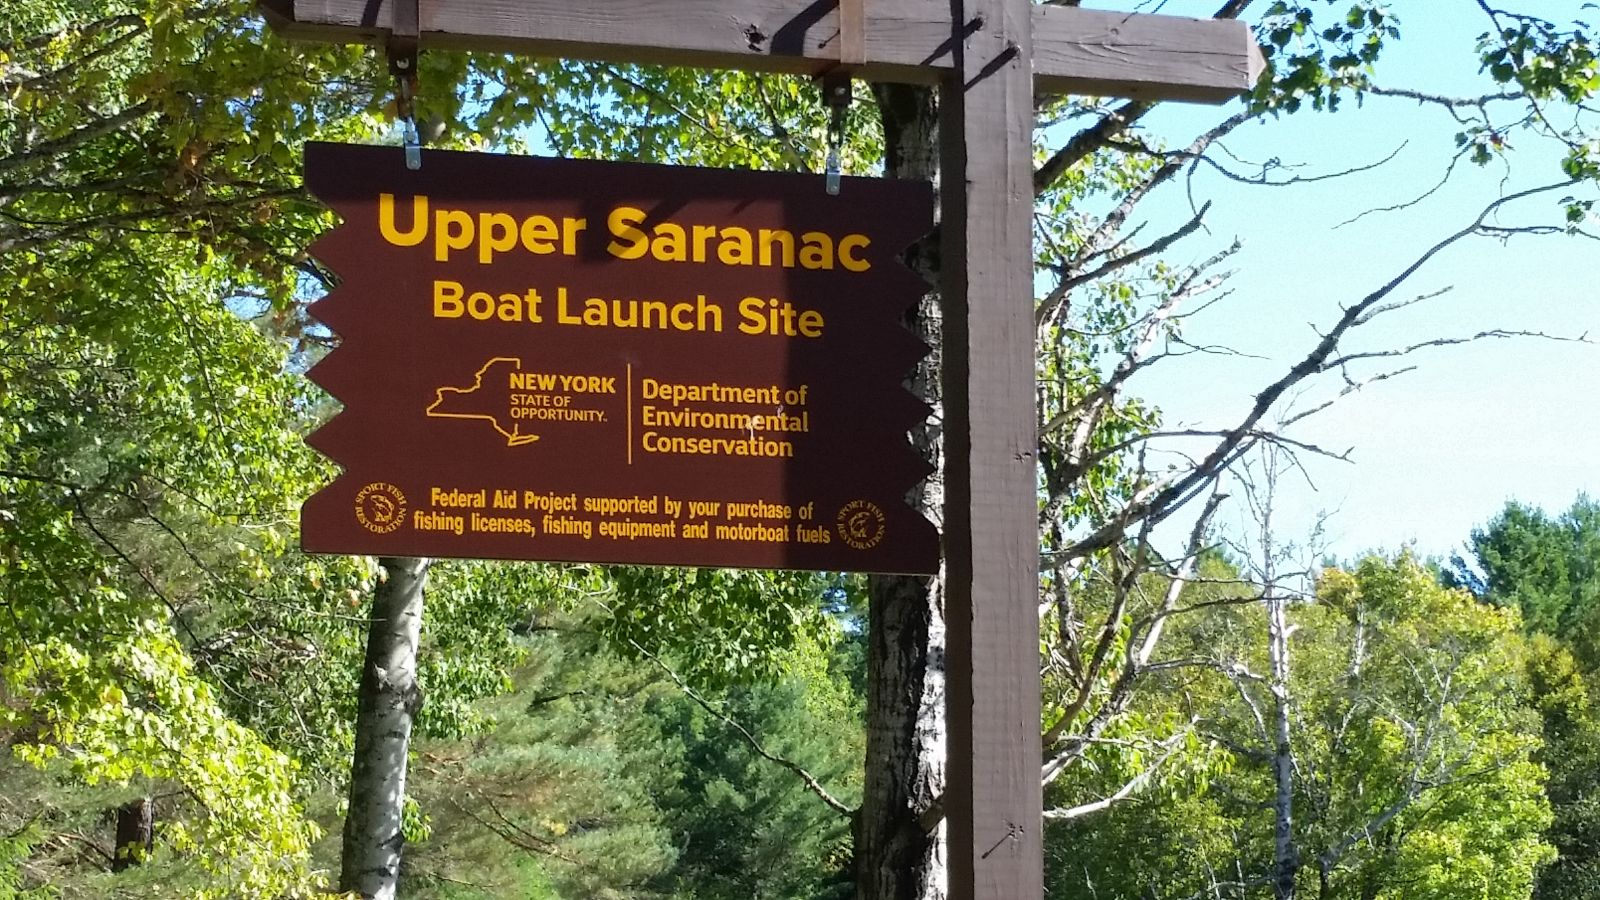 Public parking area - Upper Saranac Boat Launch